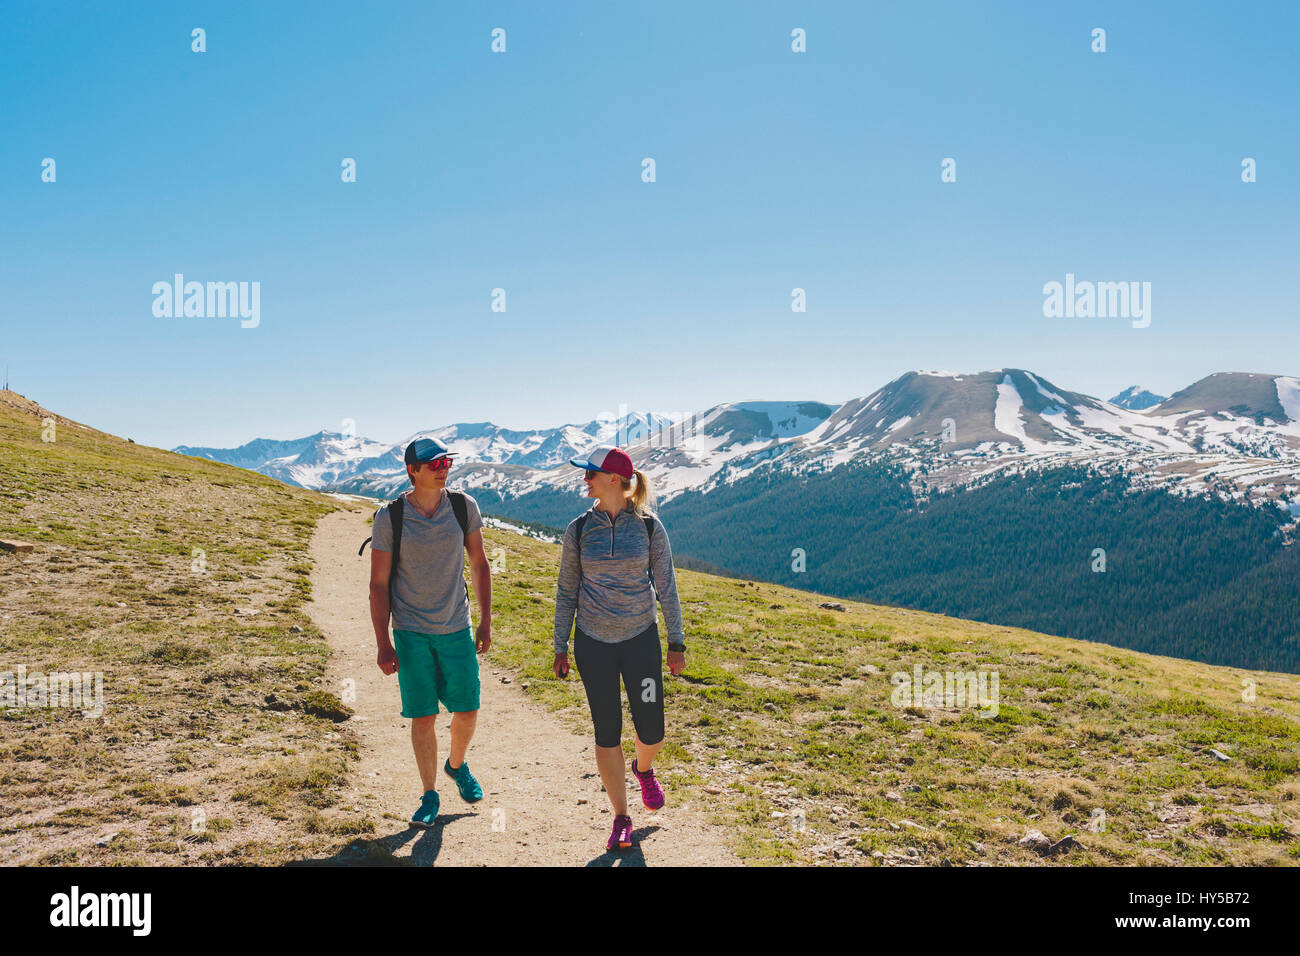 USA, Colorado, Rocky Mountain National Park, Two people hiking in mountains - Stock Image